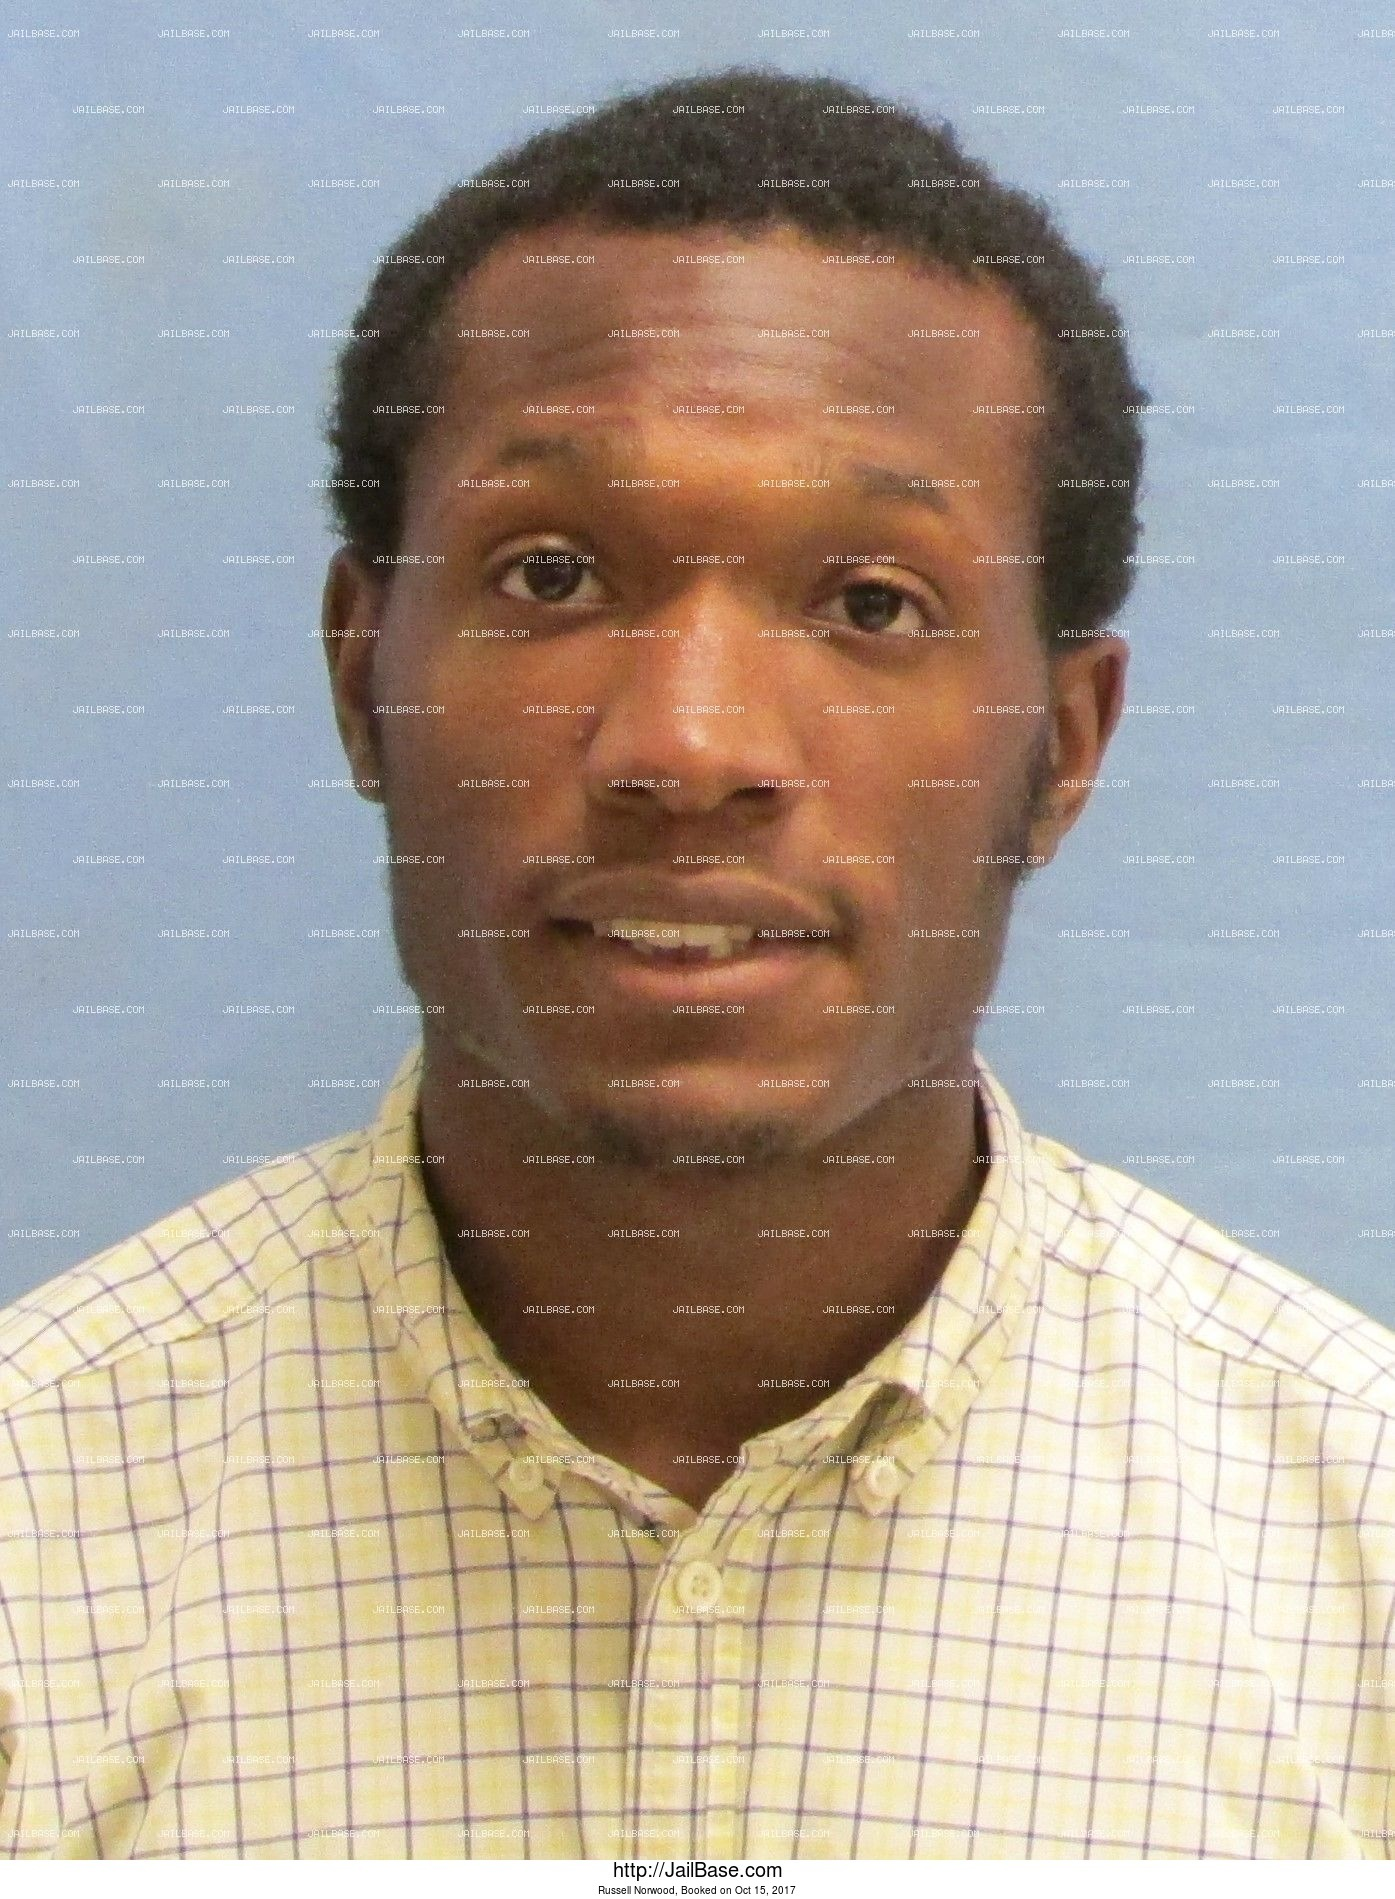 Russell Norwood mugshot picture